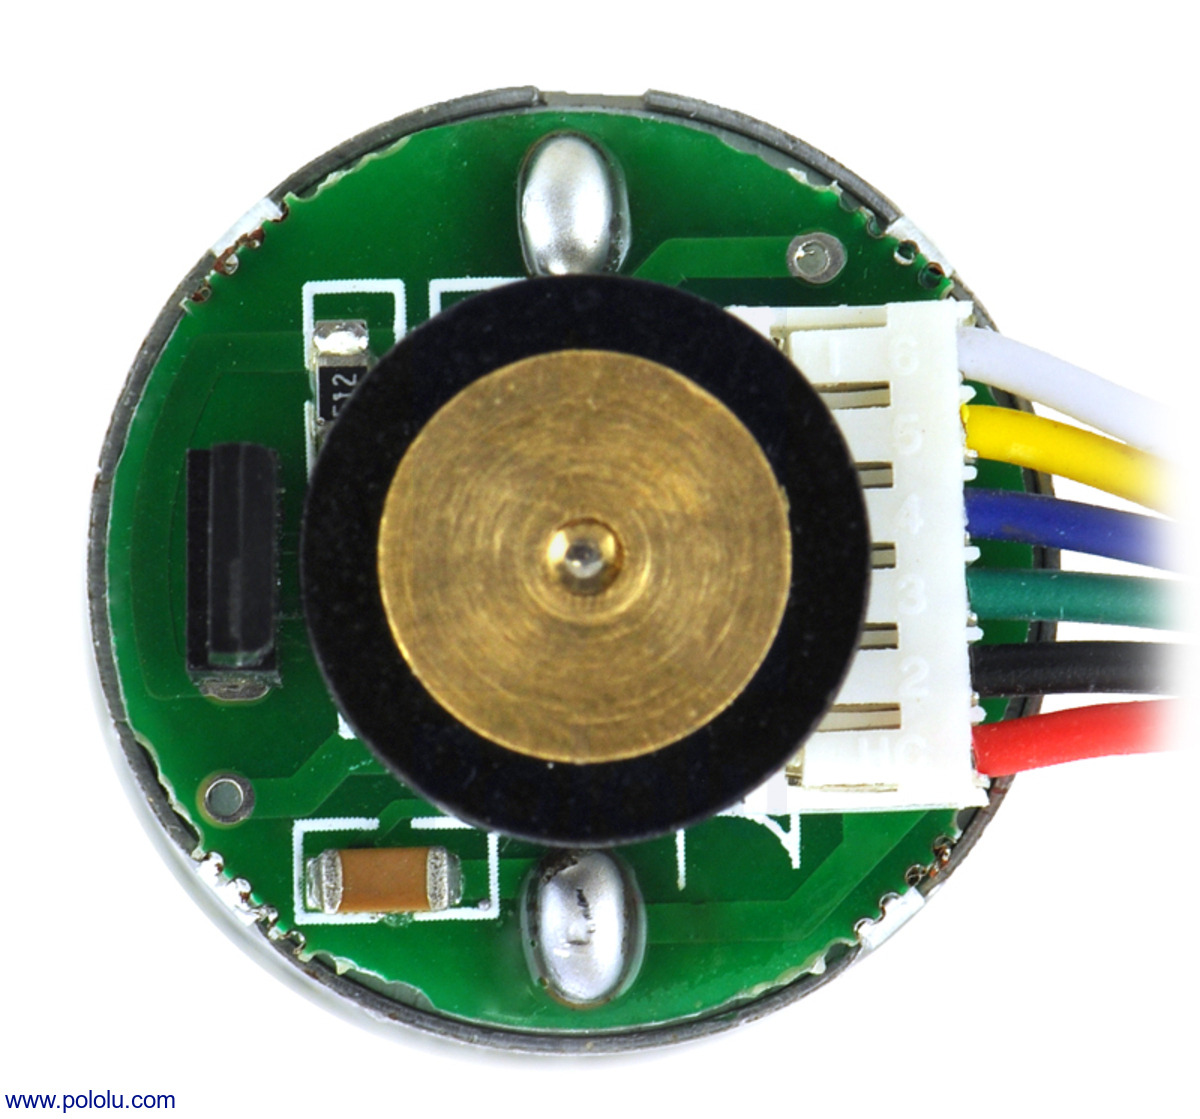 25d mm metal gearmotor with 48 cpr encoder close up view of encoder  [ 1200 x 1119 Pixel ]